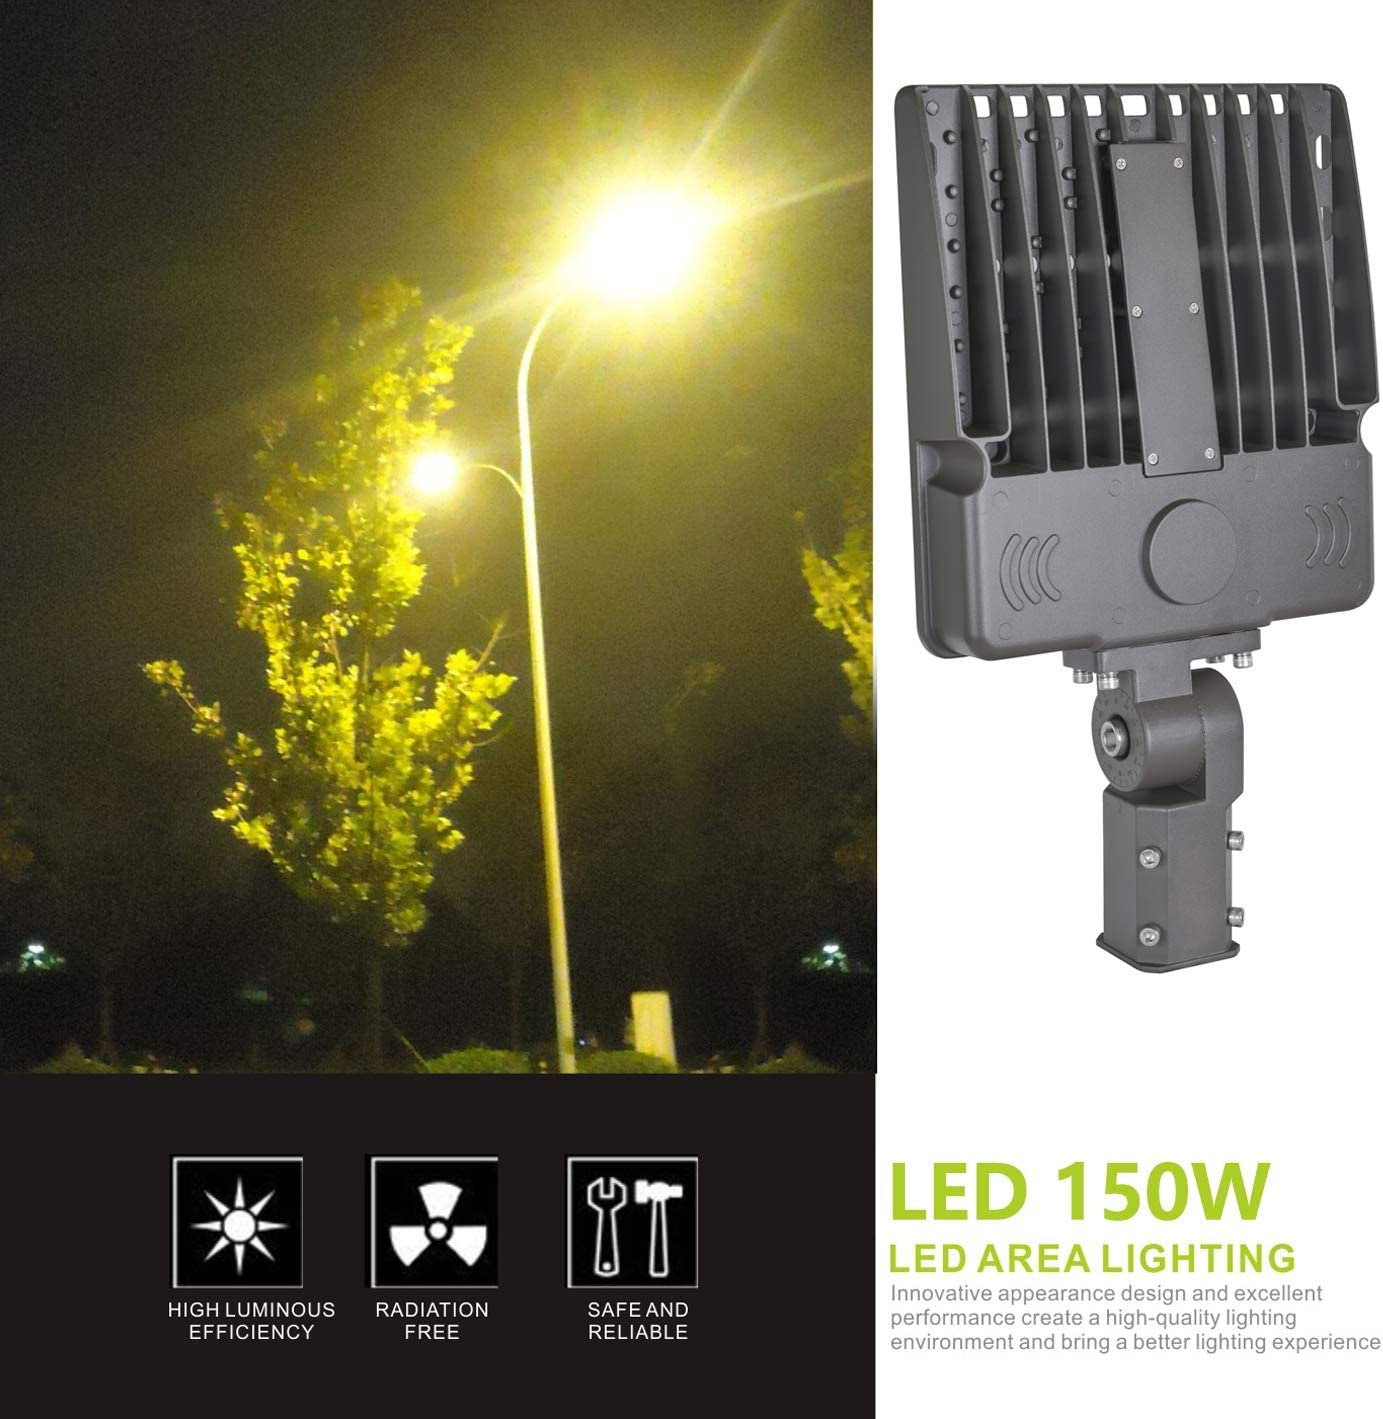 LED Parking lot Light,Super Bright LED Area Light 150W 5000K 135LM W 100-277V AC, Outdoor Shoe Box LED Flood Light and Other Commercial Street Lighting Stadium,Slip-fit, UL and DLC